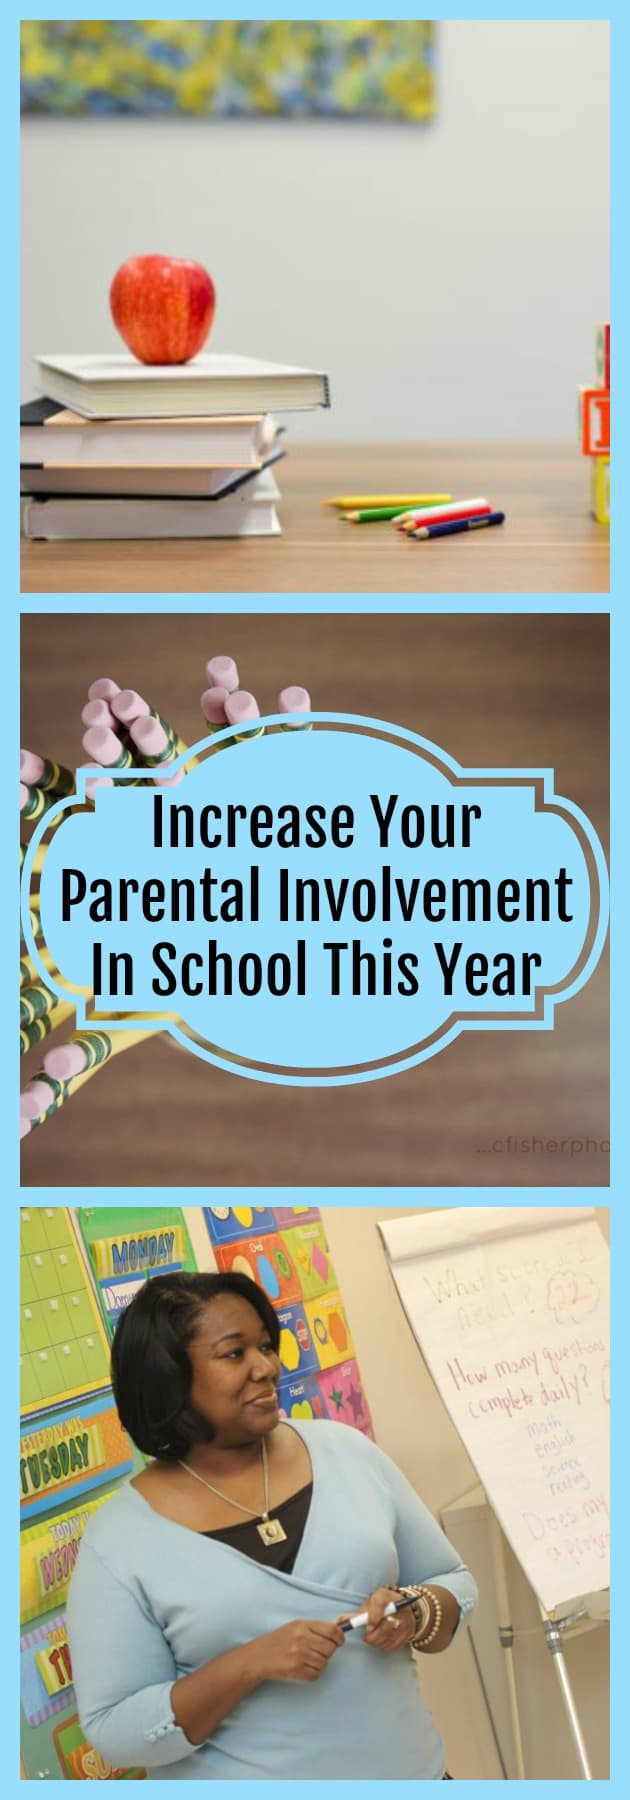 Increase Your Parental Involvement in School This Year